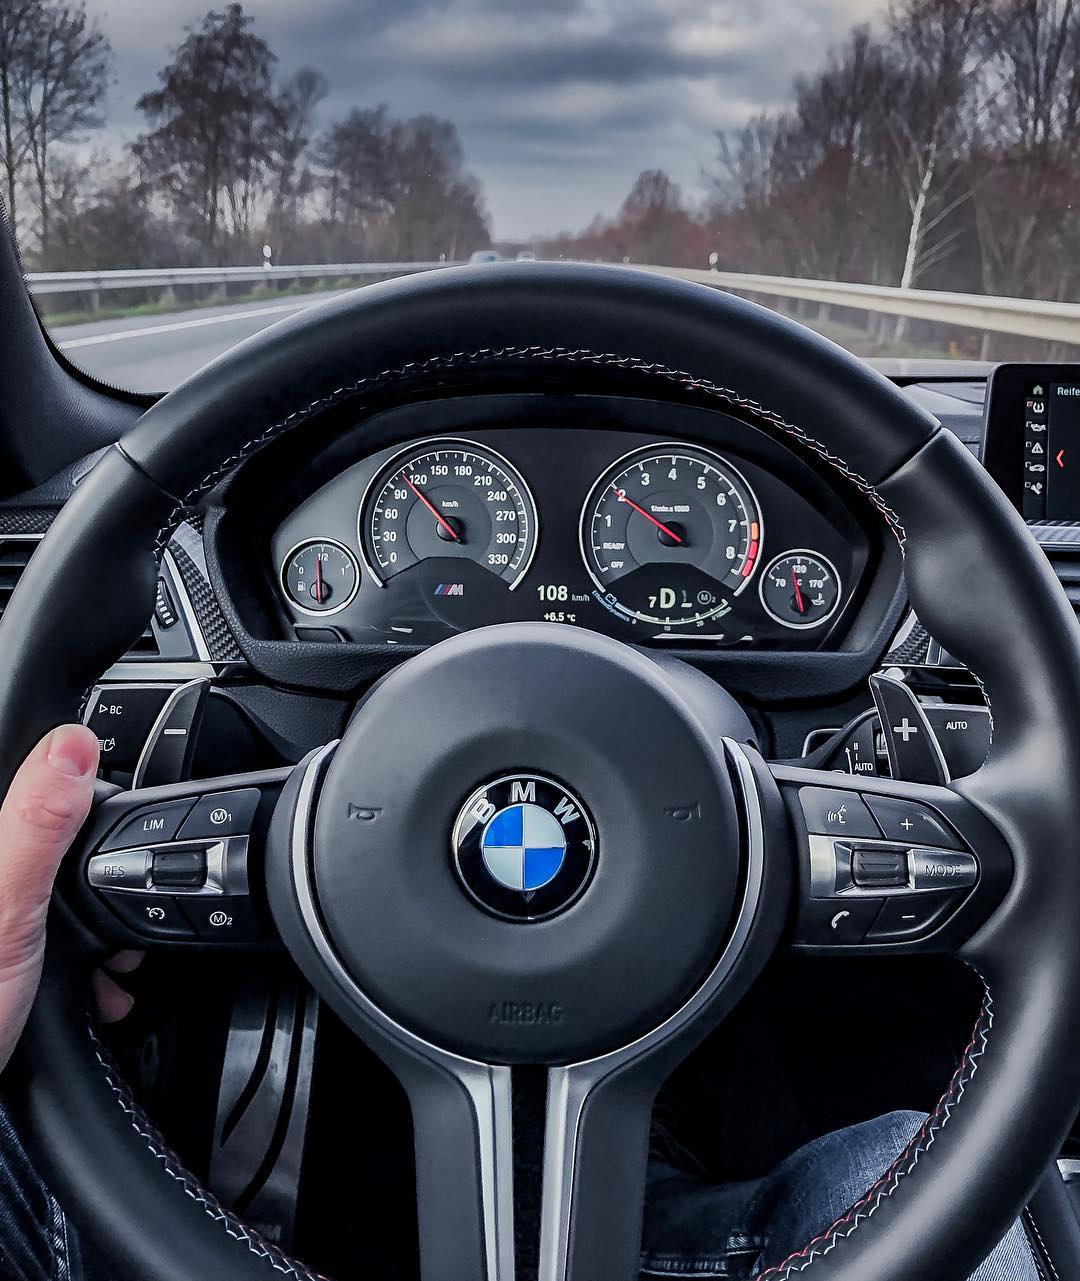 Today is Ⓜ️-Day again…those Michelin Pilot Super Sport don't really work at 6.5🌡…it's and awful lot of fun to drive this beast tho😱 #bmwmrepost #mperformance #m4competition #m4competitionpack #m4cs #m4 #bmwm4 #bmwm4competitionpackage #frozenblack #frozenblackm4 #automanntv #automannsgarage #mtown